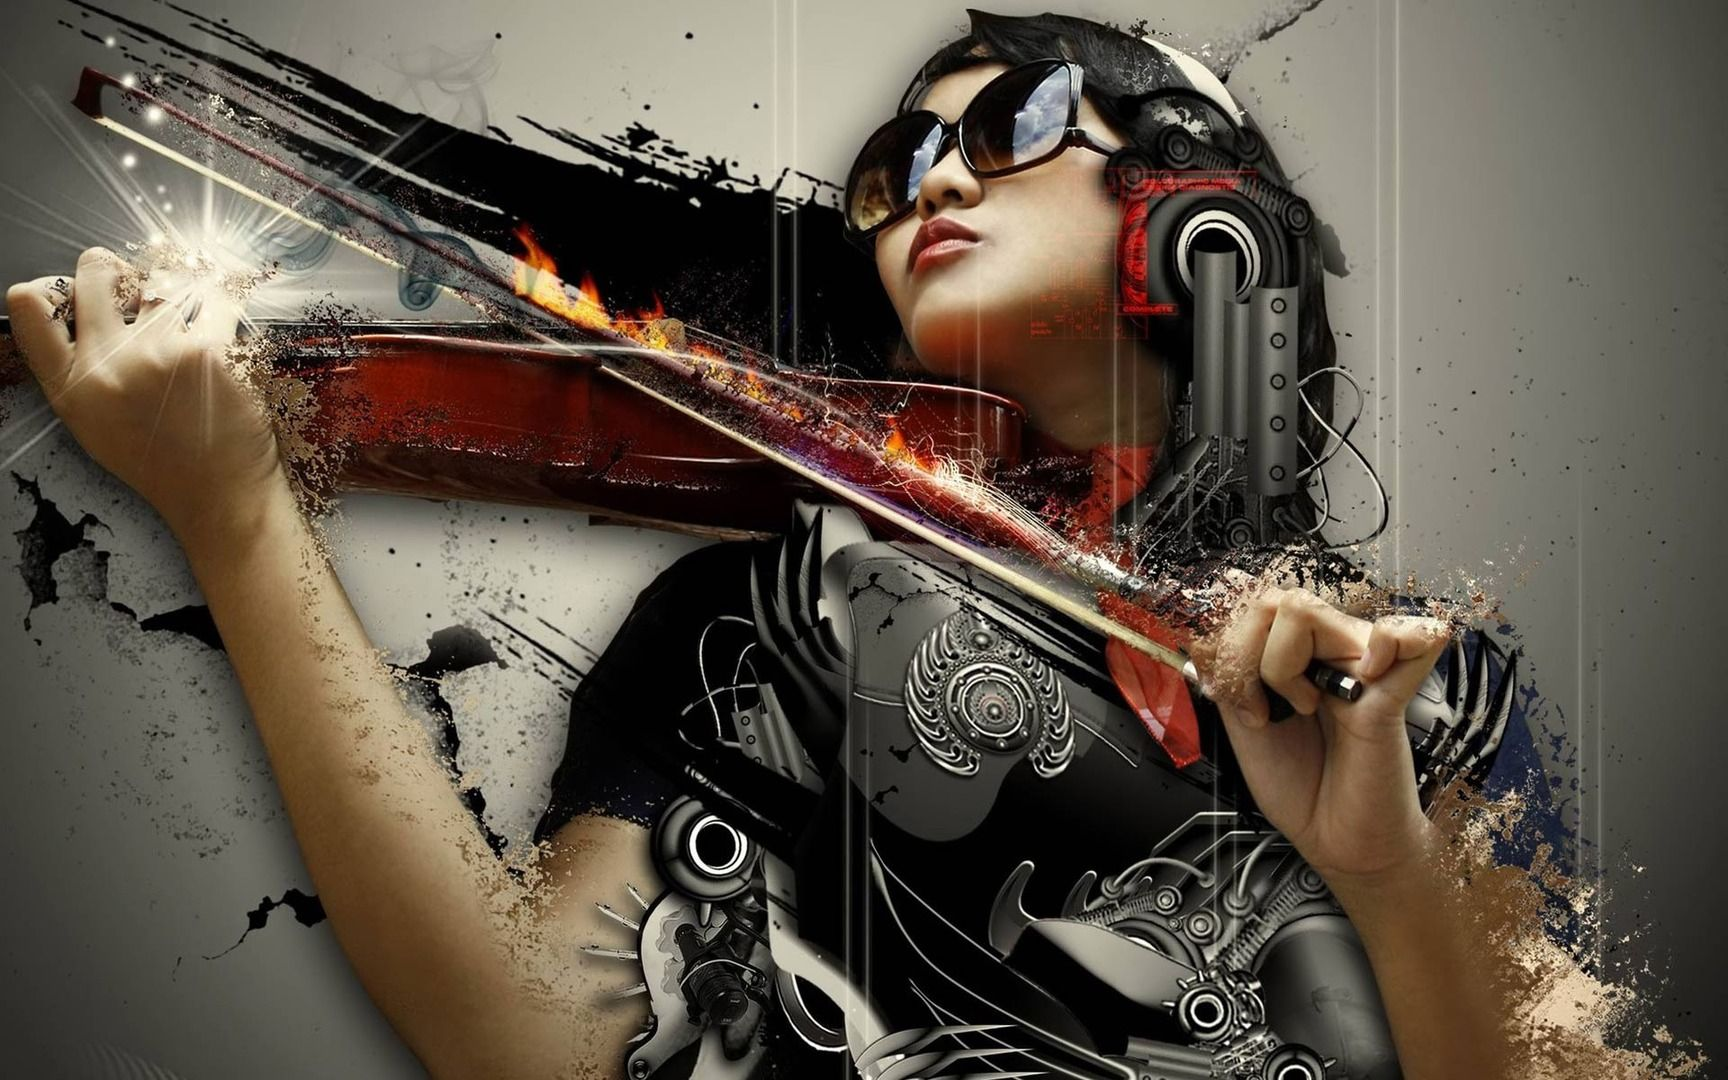 music wallpapers 1080p: Woman With Violin 1080p HD Wallpaper Music